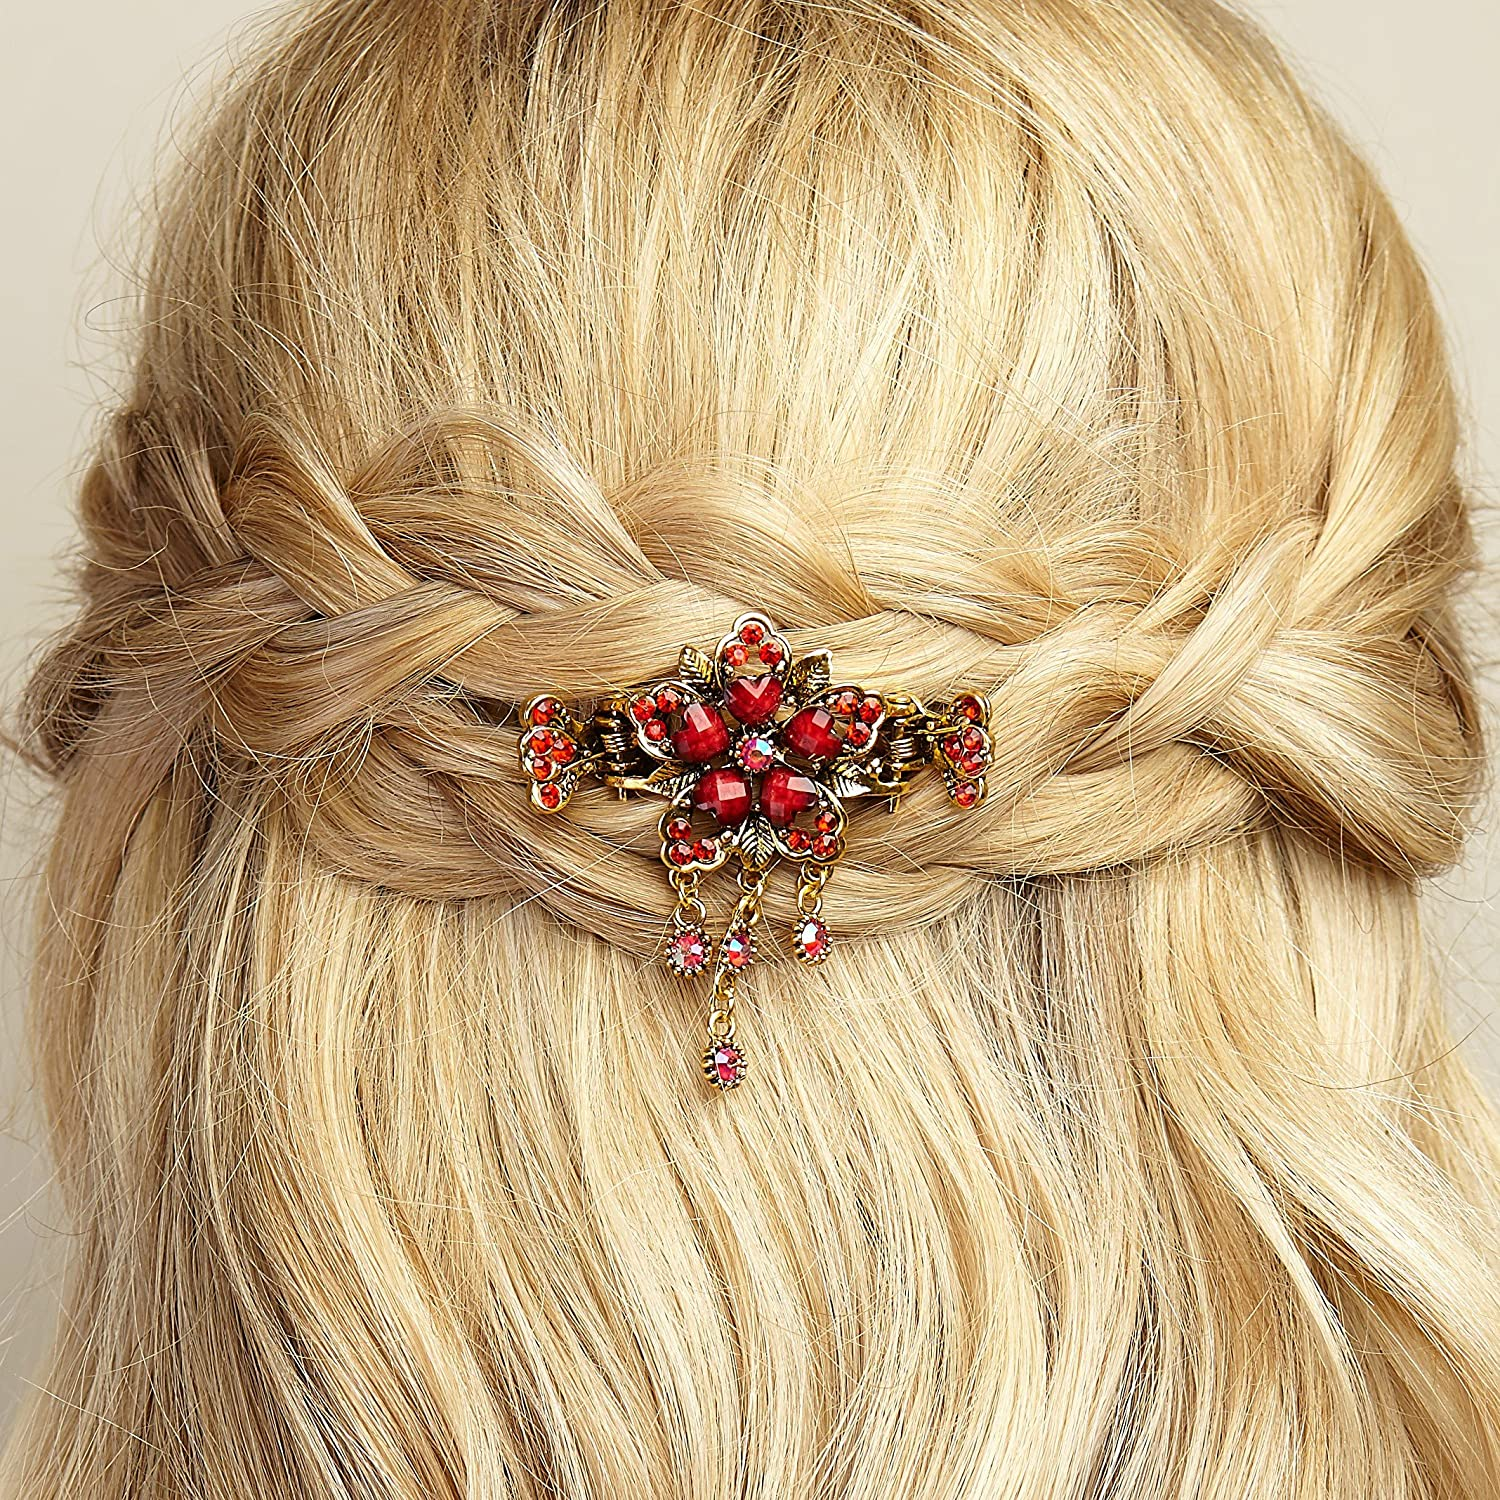 Small Flower Hair Clip Claw Gold Hair Claw Vintage Style Hairclip Rhinestone Crystal Hair Clasp by QueenMee (Red) Queen Bee Boutique